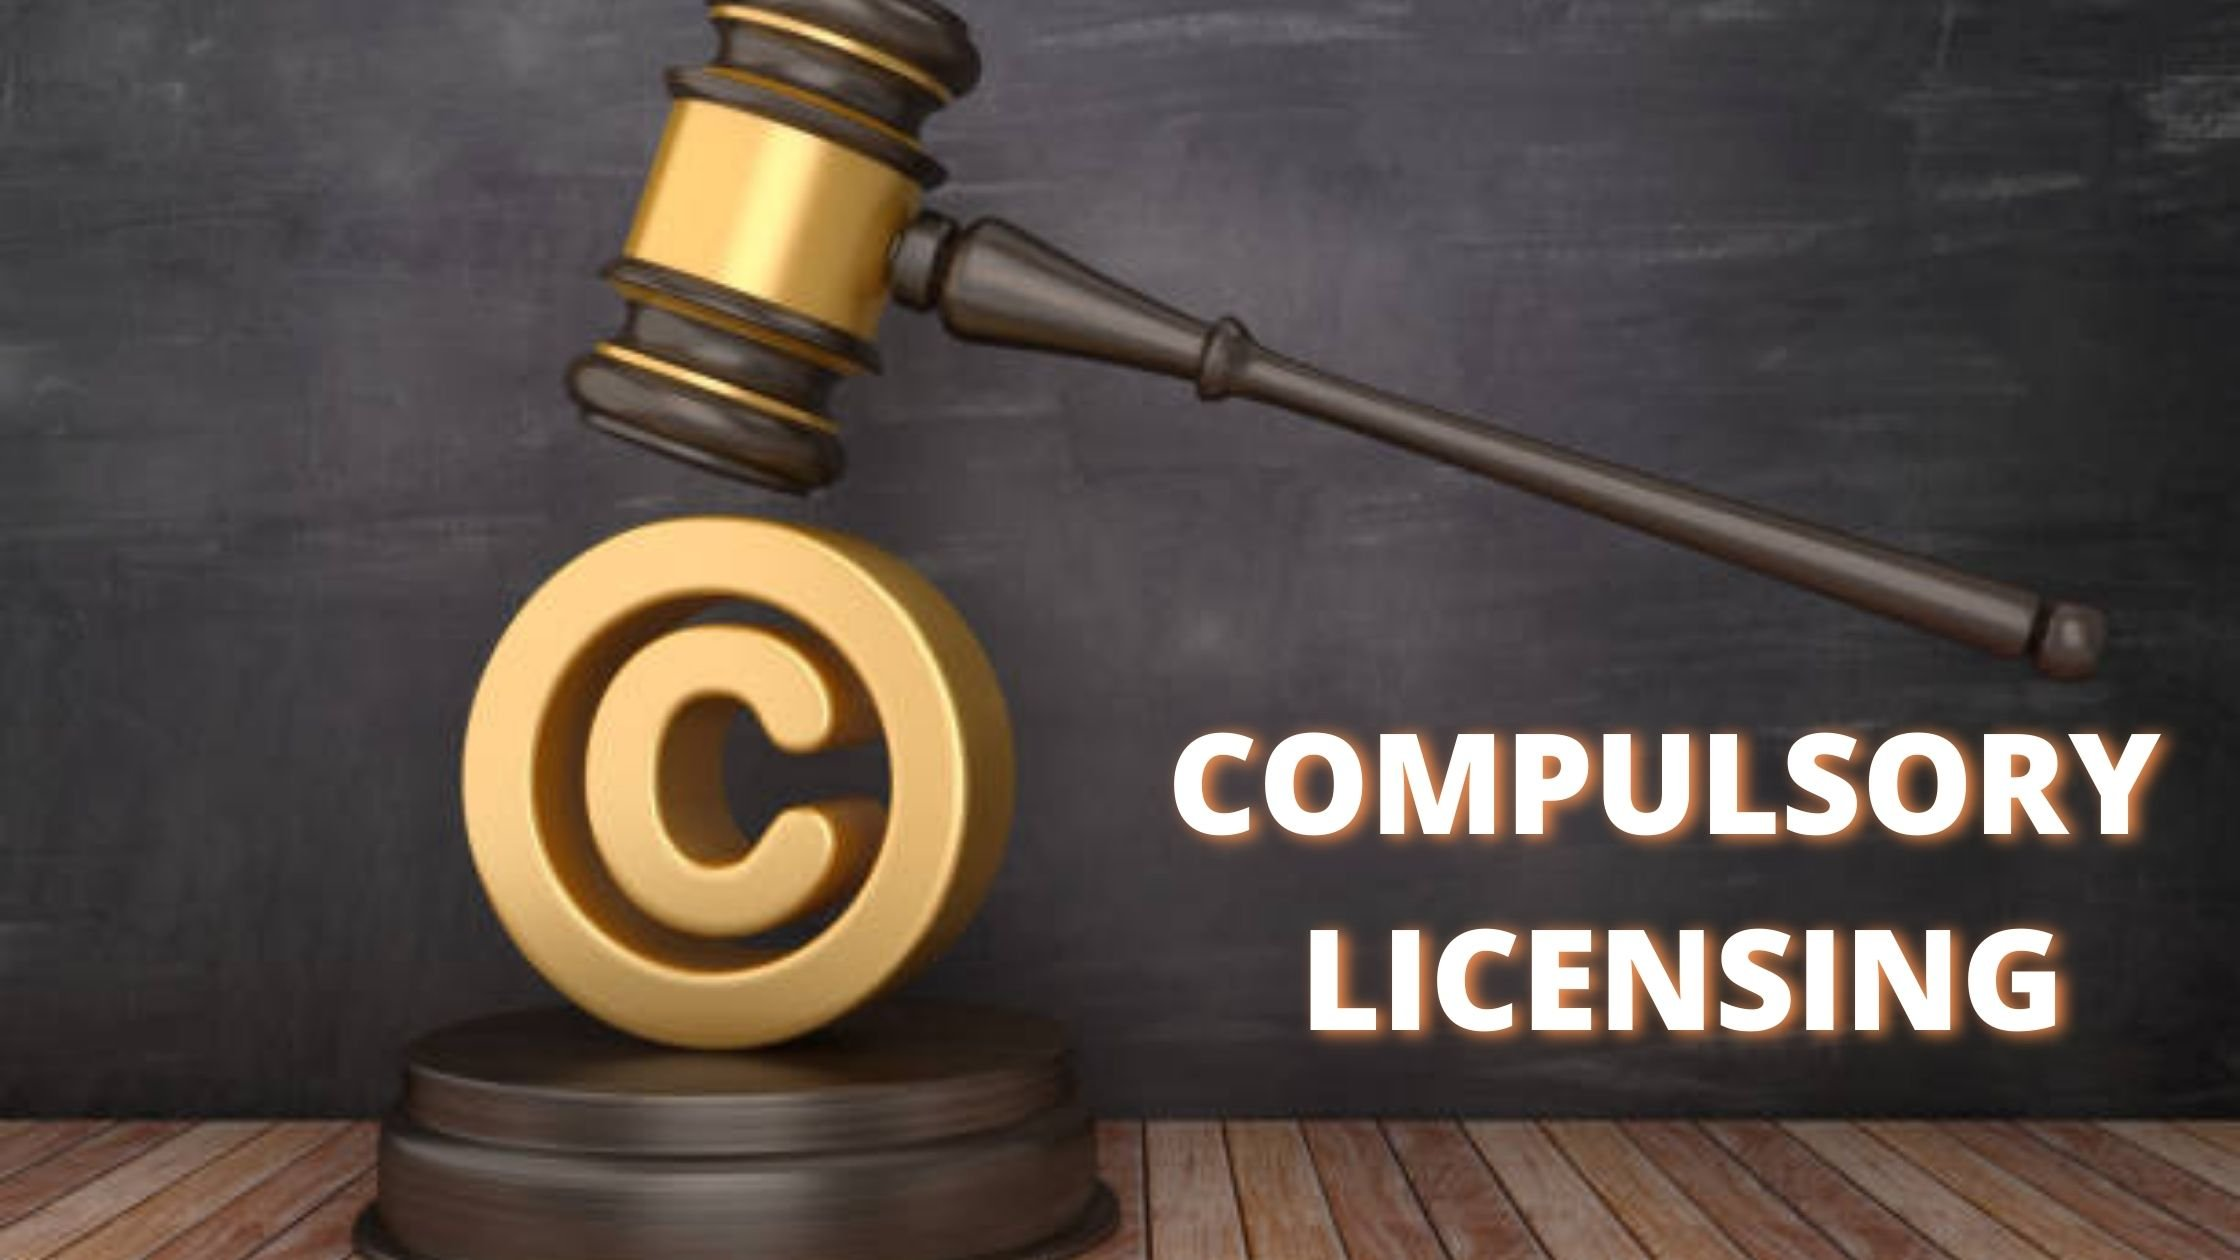 Compulsory Licensing under Copyright Law